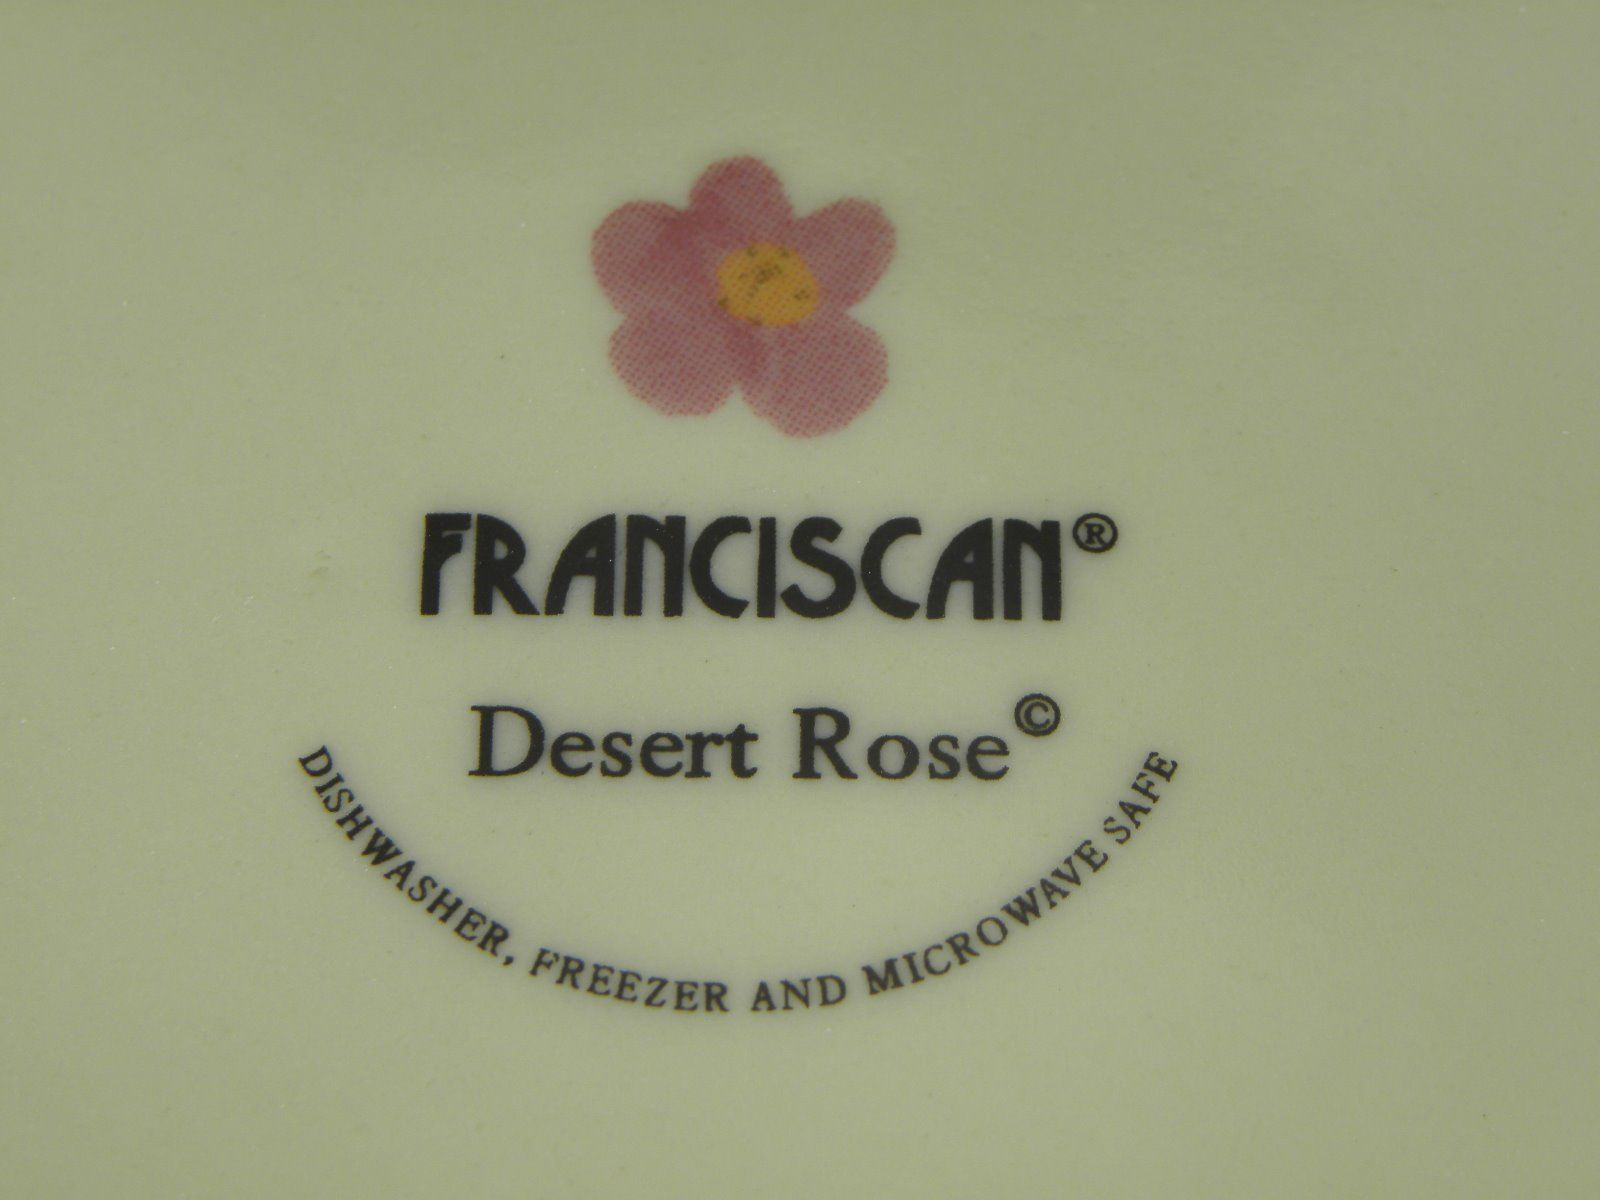 Franciscan Desert Rose Round Vegetable Server  BRAND NEW PRODUCTION